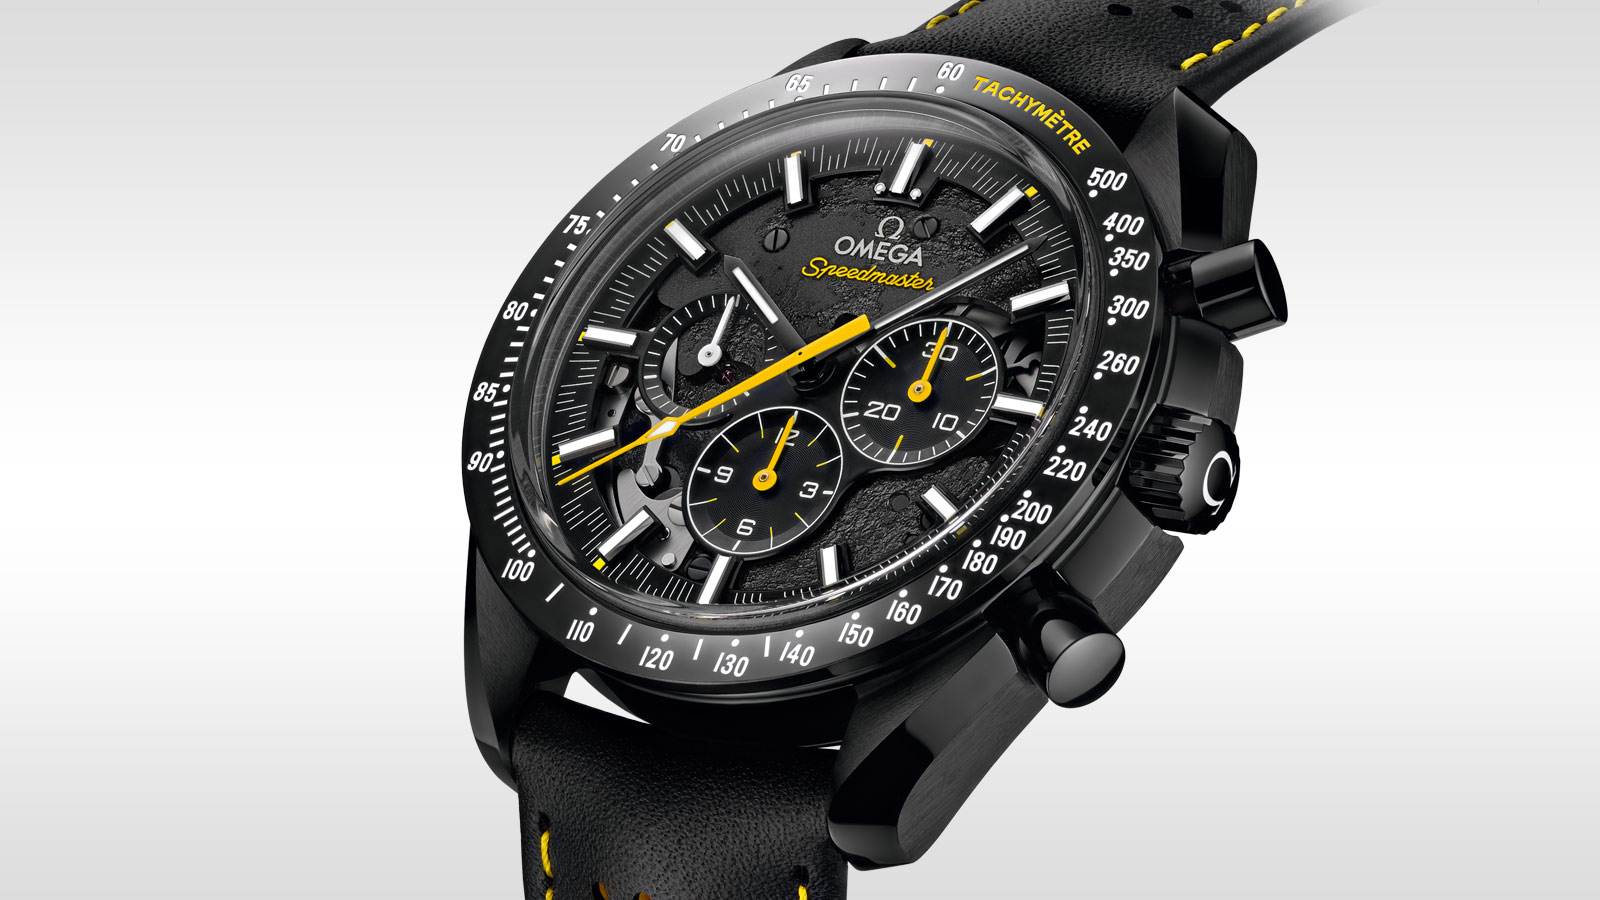 Speedmaster Moonwatch Moonwatch Chronograph 44,25 mm - 311.92.44.30.01.001 - Anzeigen 1